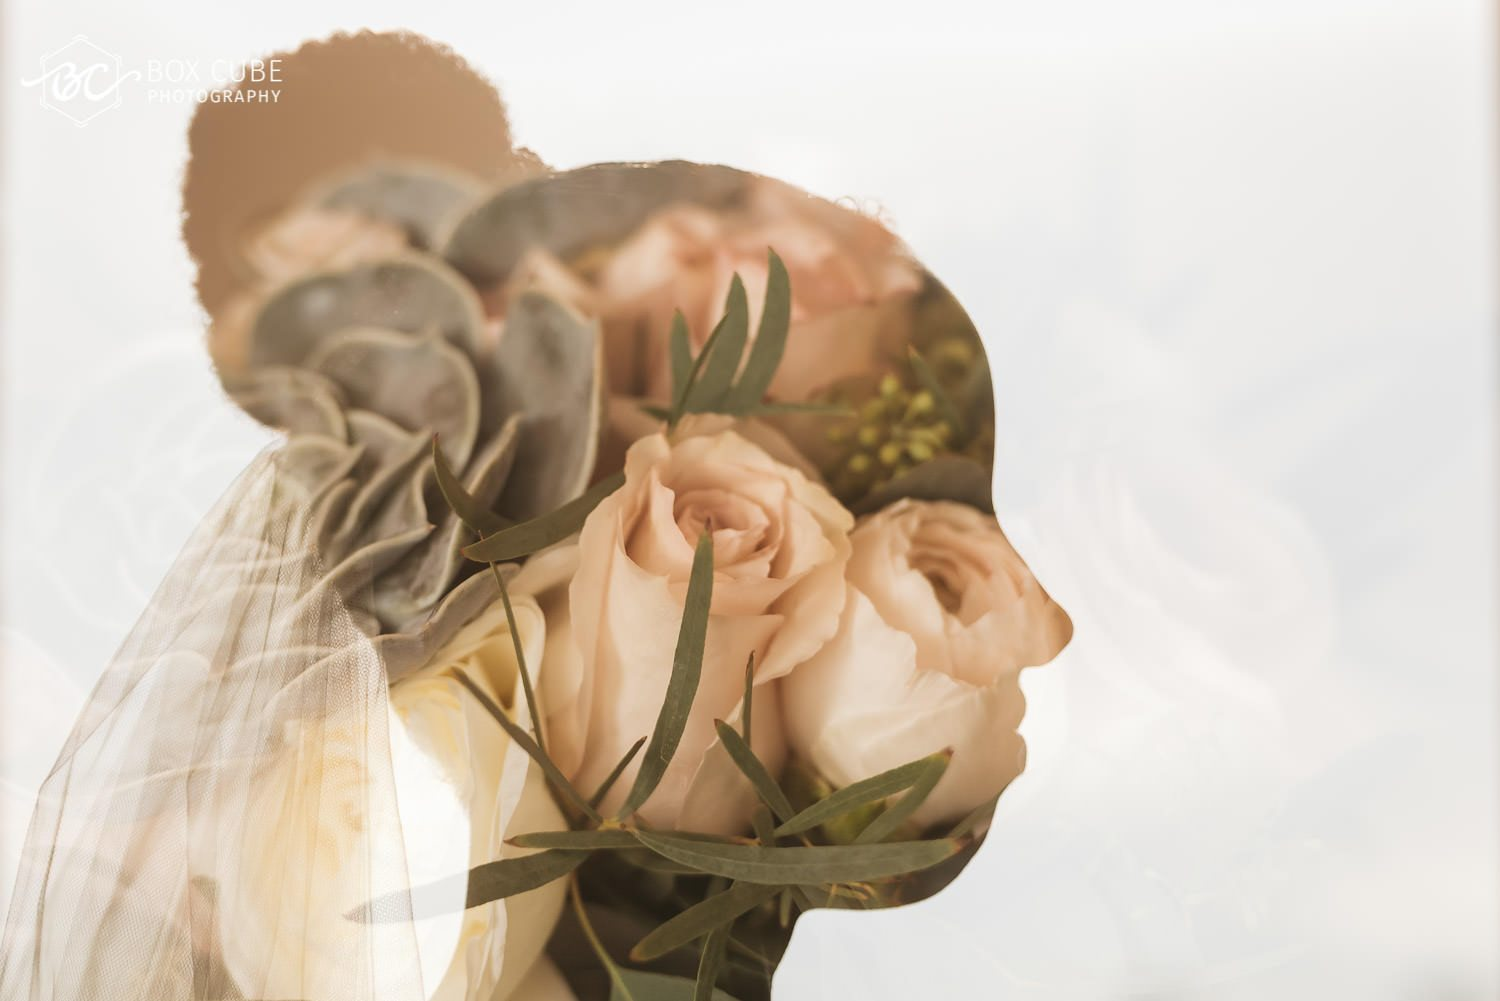 Double exposure of bride and flowers